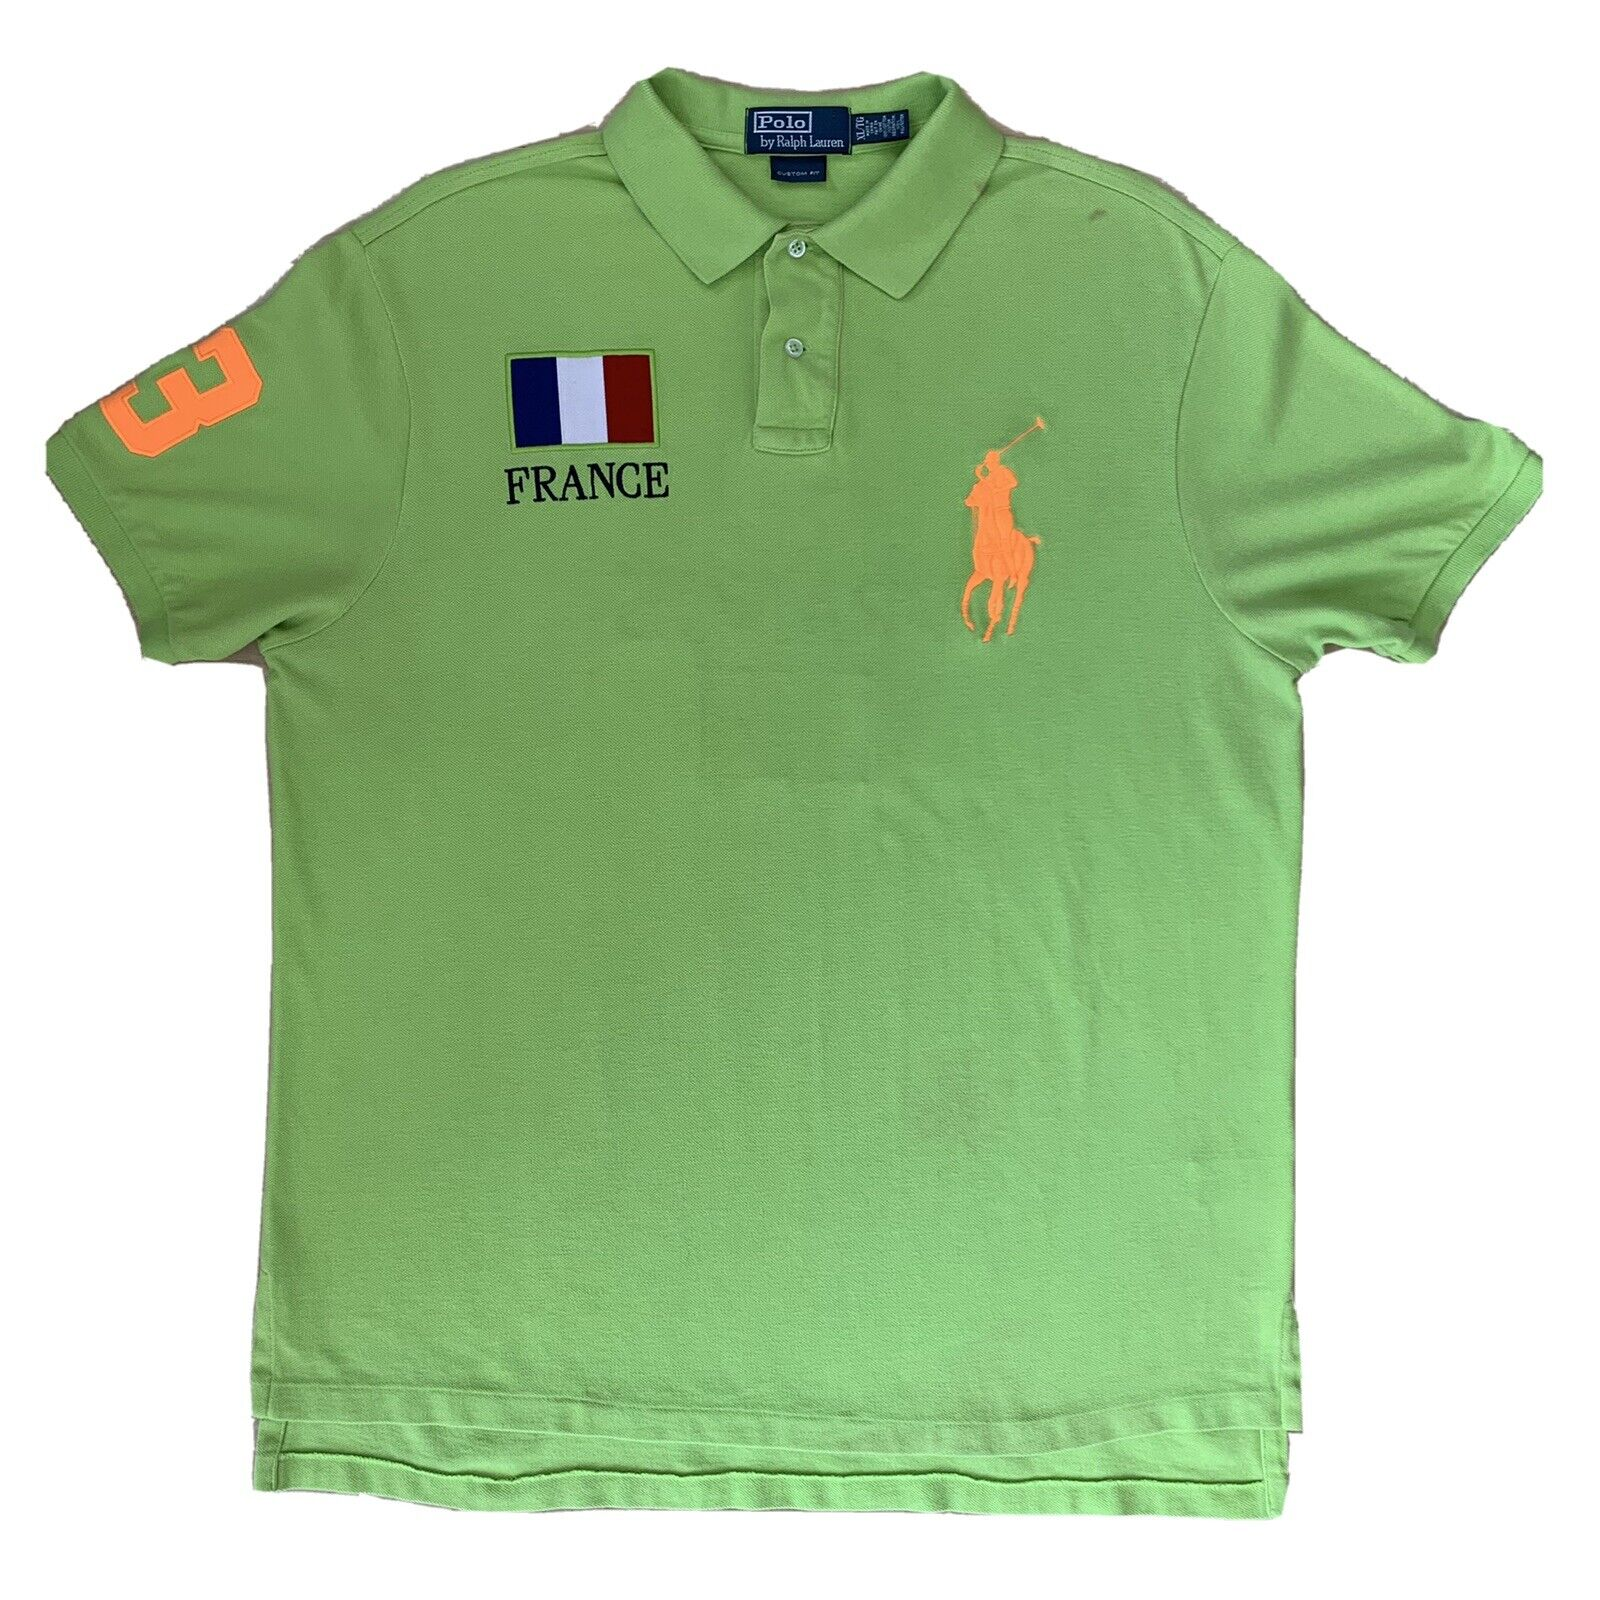 Vintage Polo Ralph Lauren France Rugby Shirt XL G… - image 1